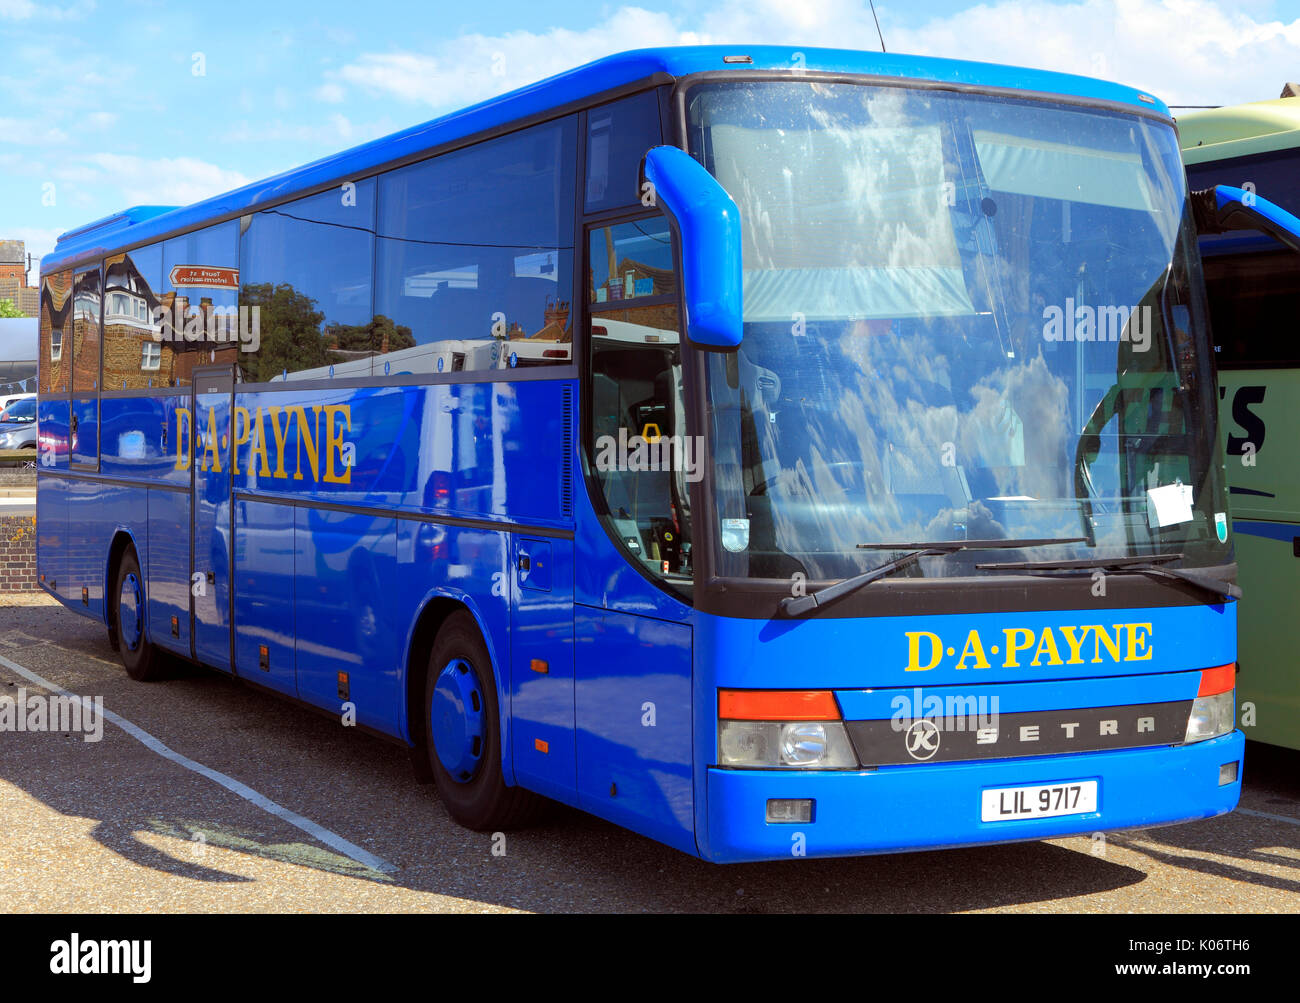 D.A. Payne, coach, coaches, day tips, trip, excursion, excursions, travel company, companies, transport, holidays, travel, England, UK - Stock Image